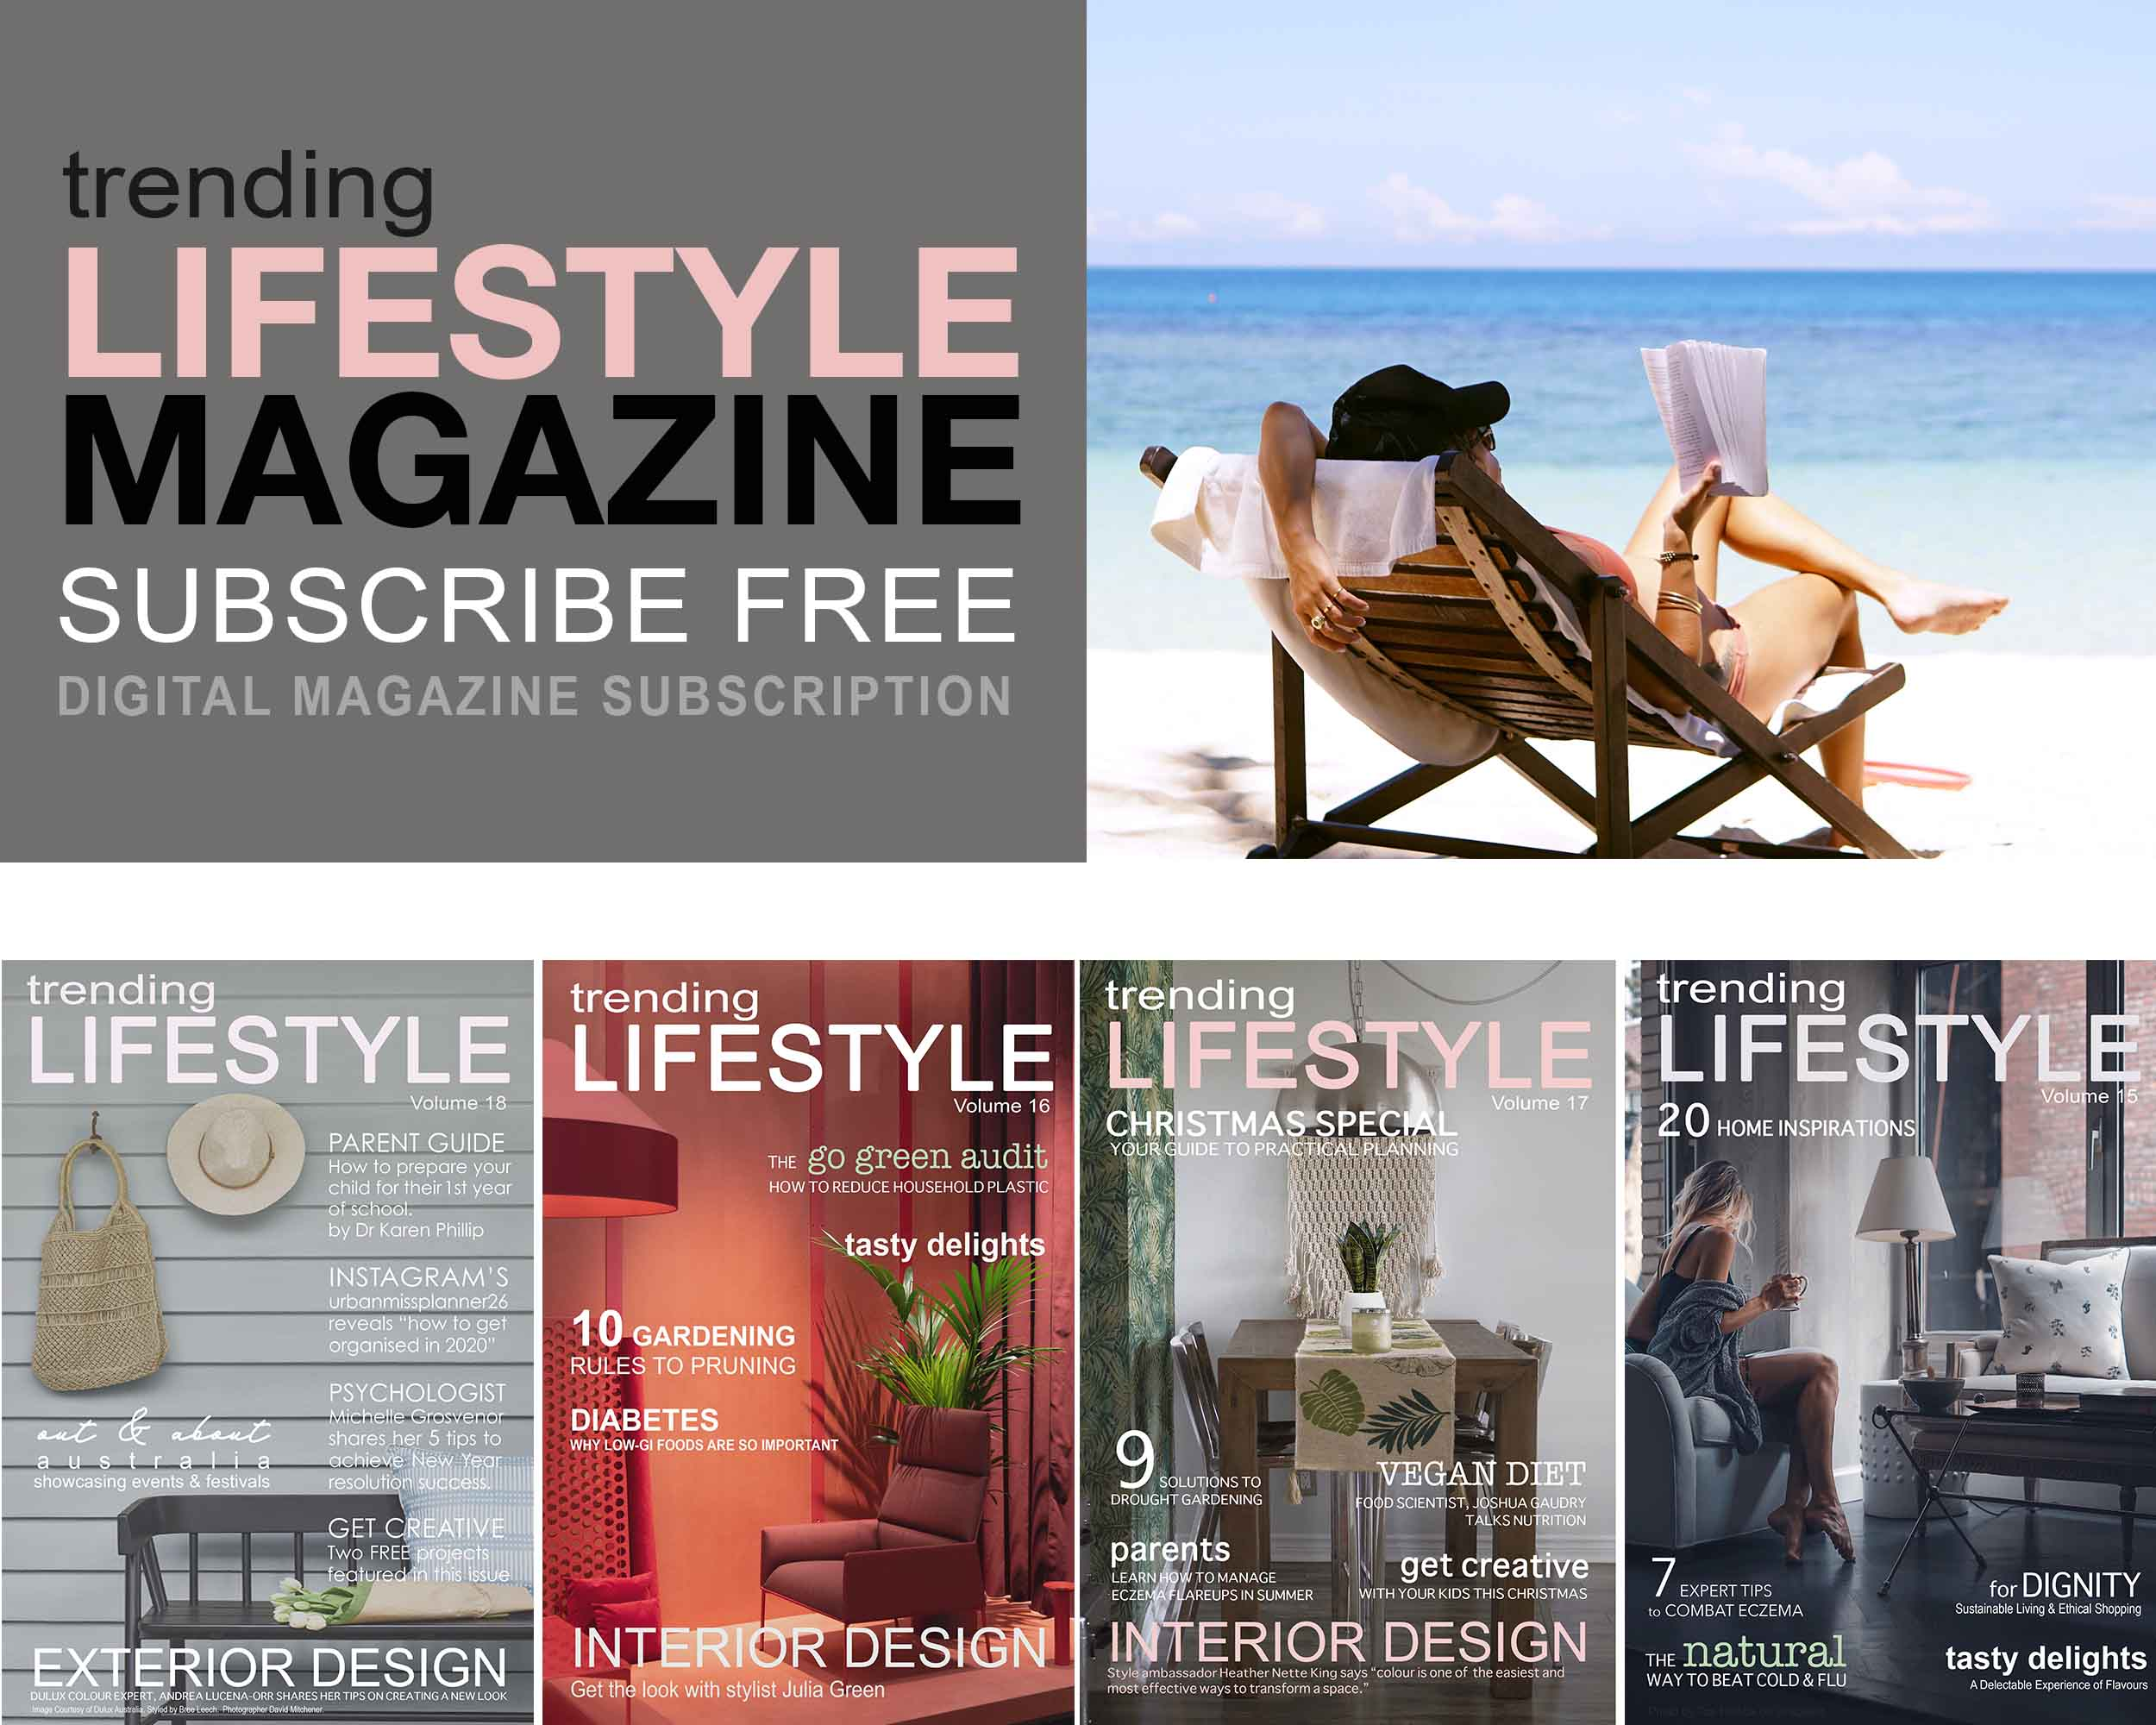 Trending Lifestyle Magazine Subscribe Free